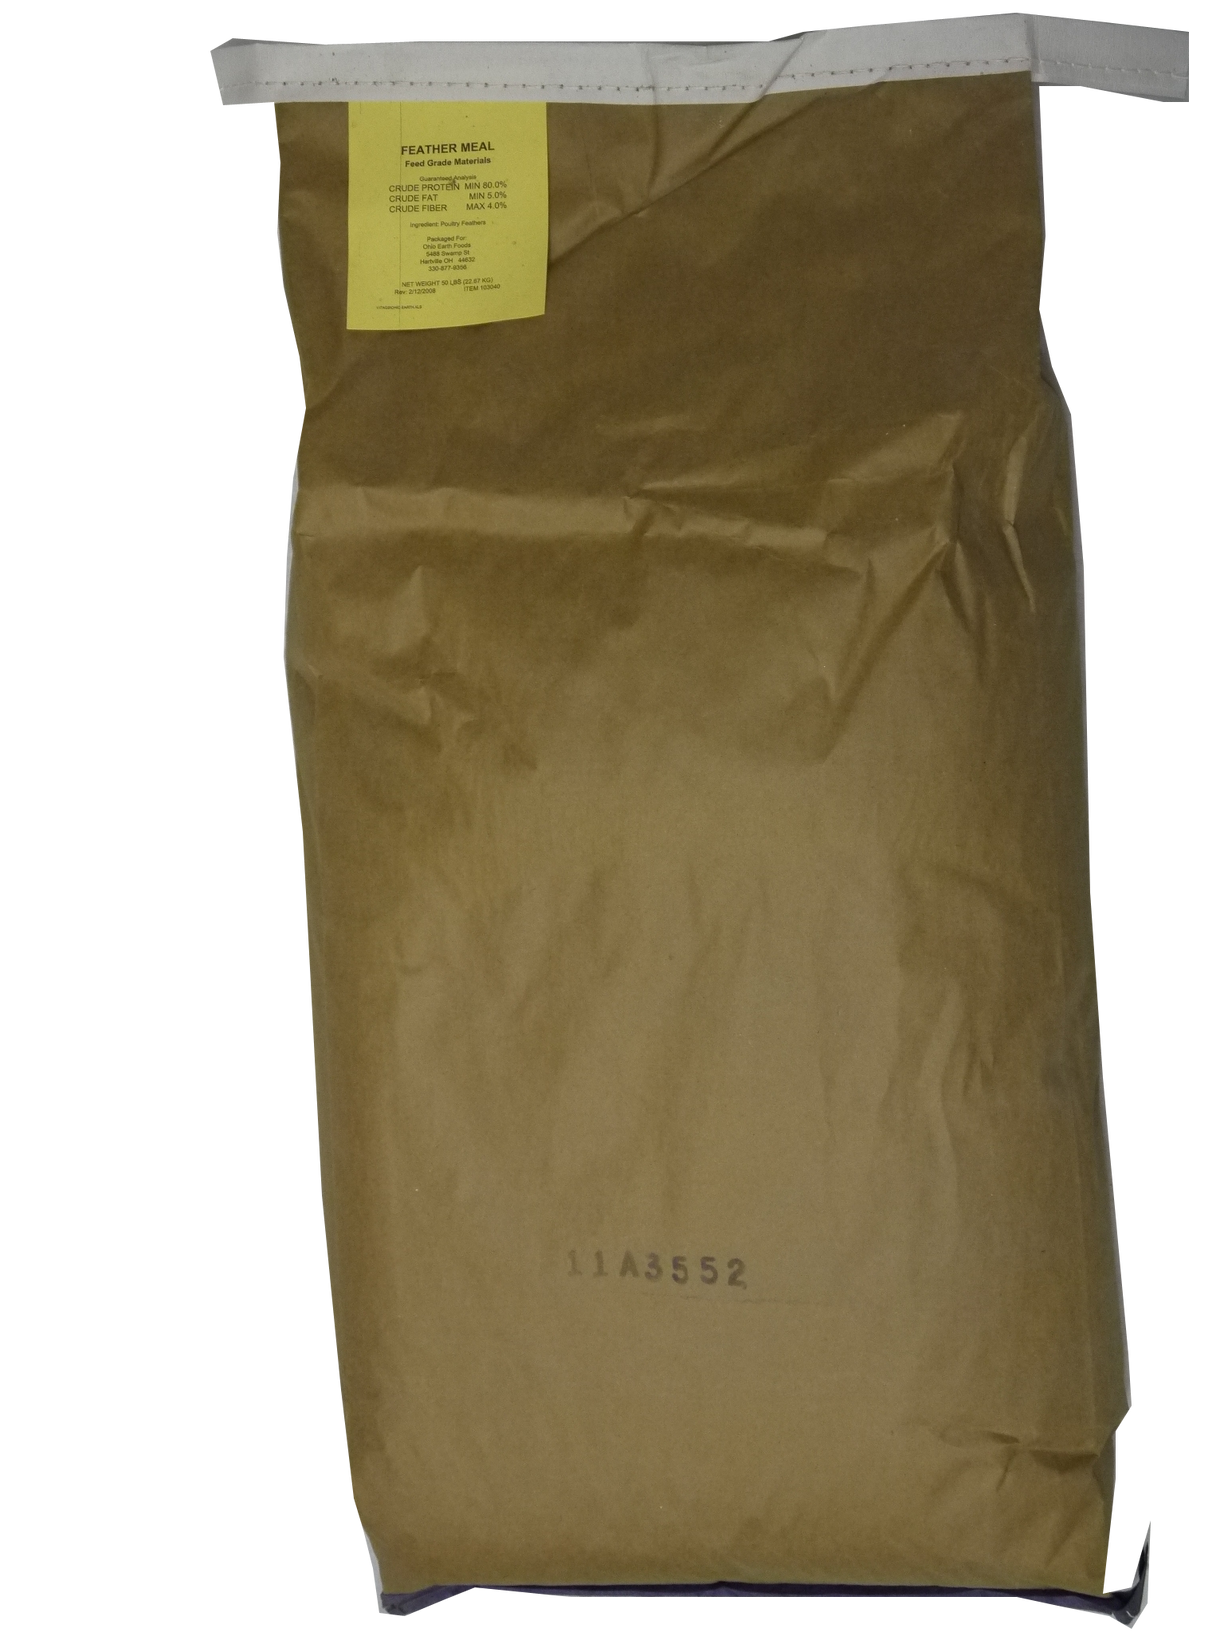 FEATHERMEAL* 50# bag